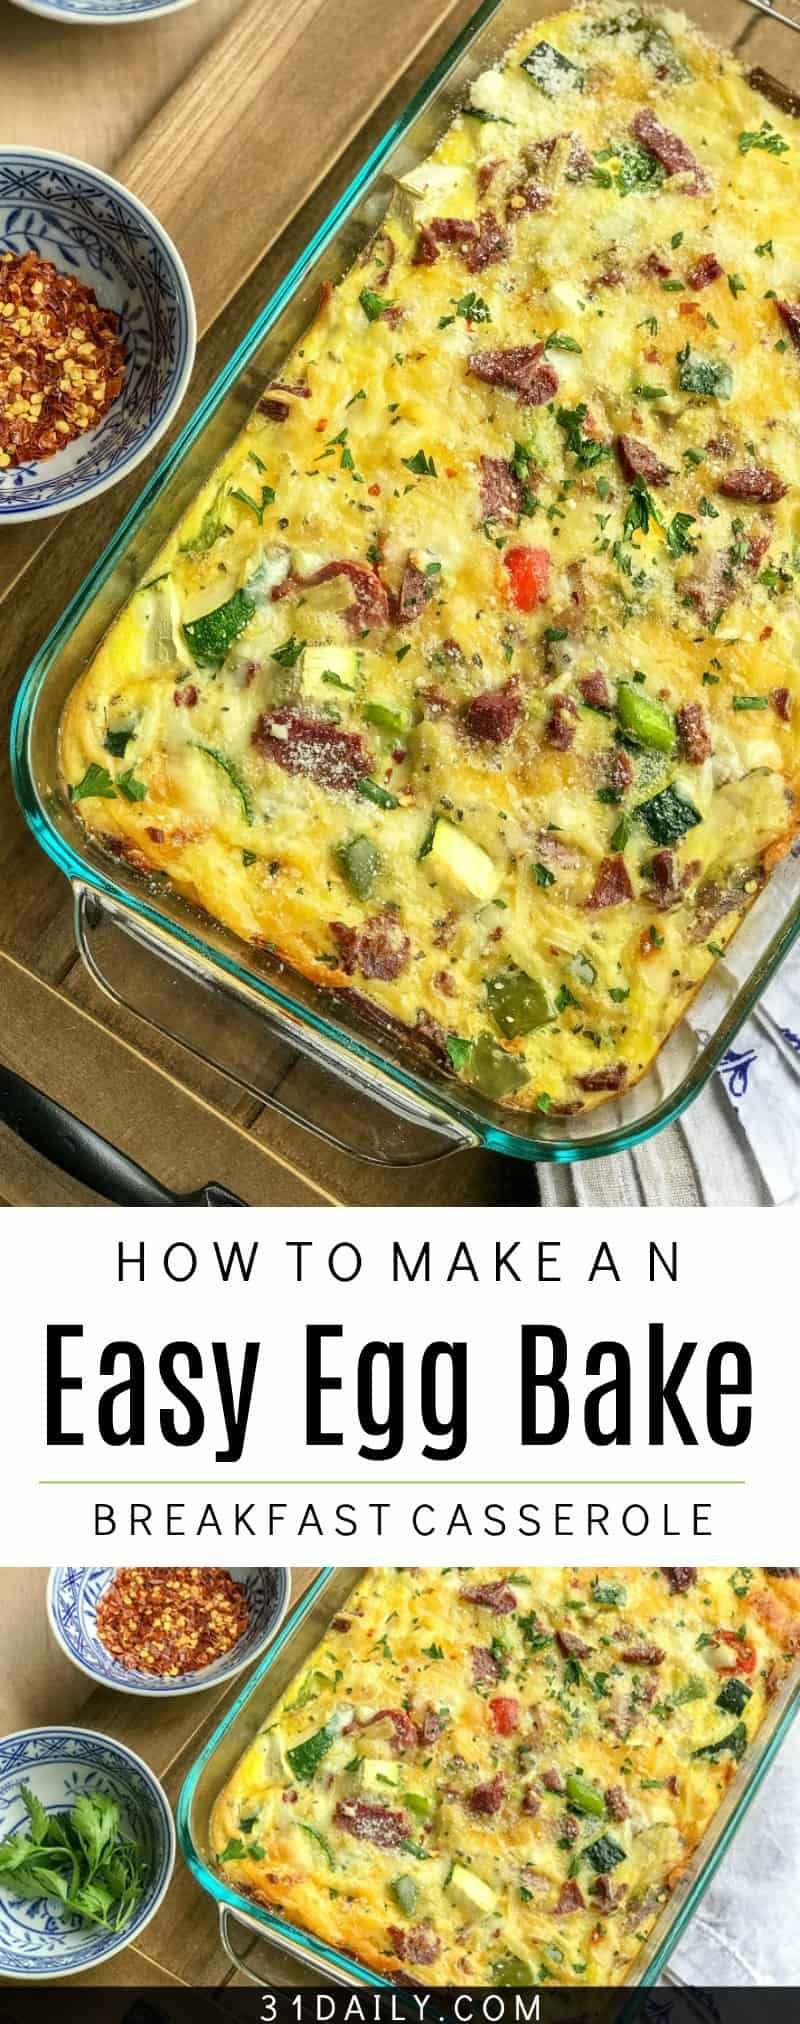 Make Ahead Easy Vegetable Egg Bake Breakfast Casserole - 31 Daily